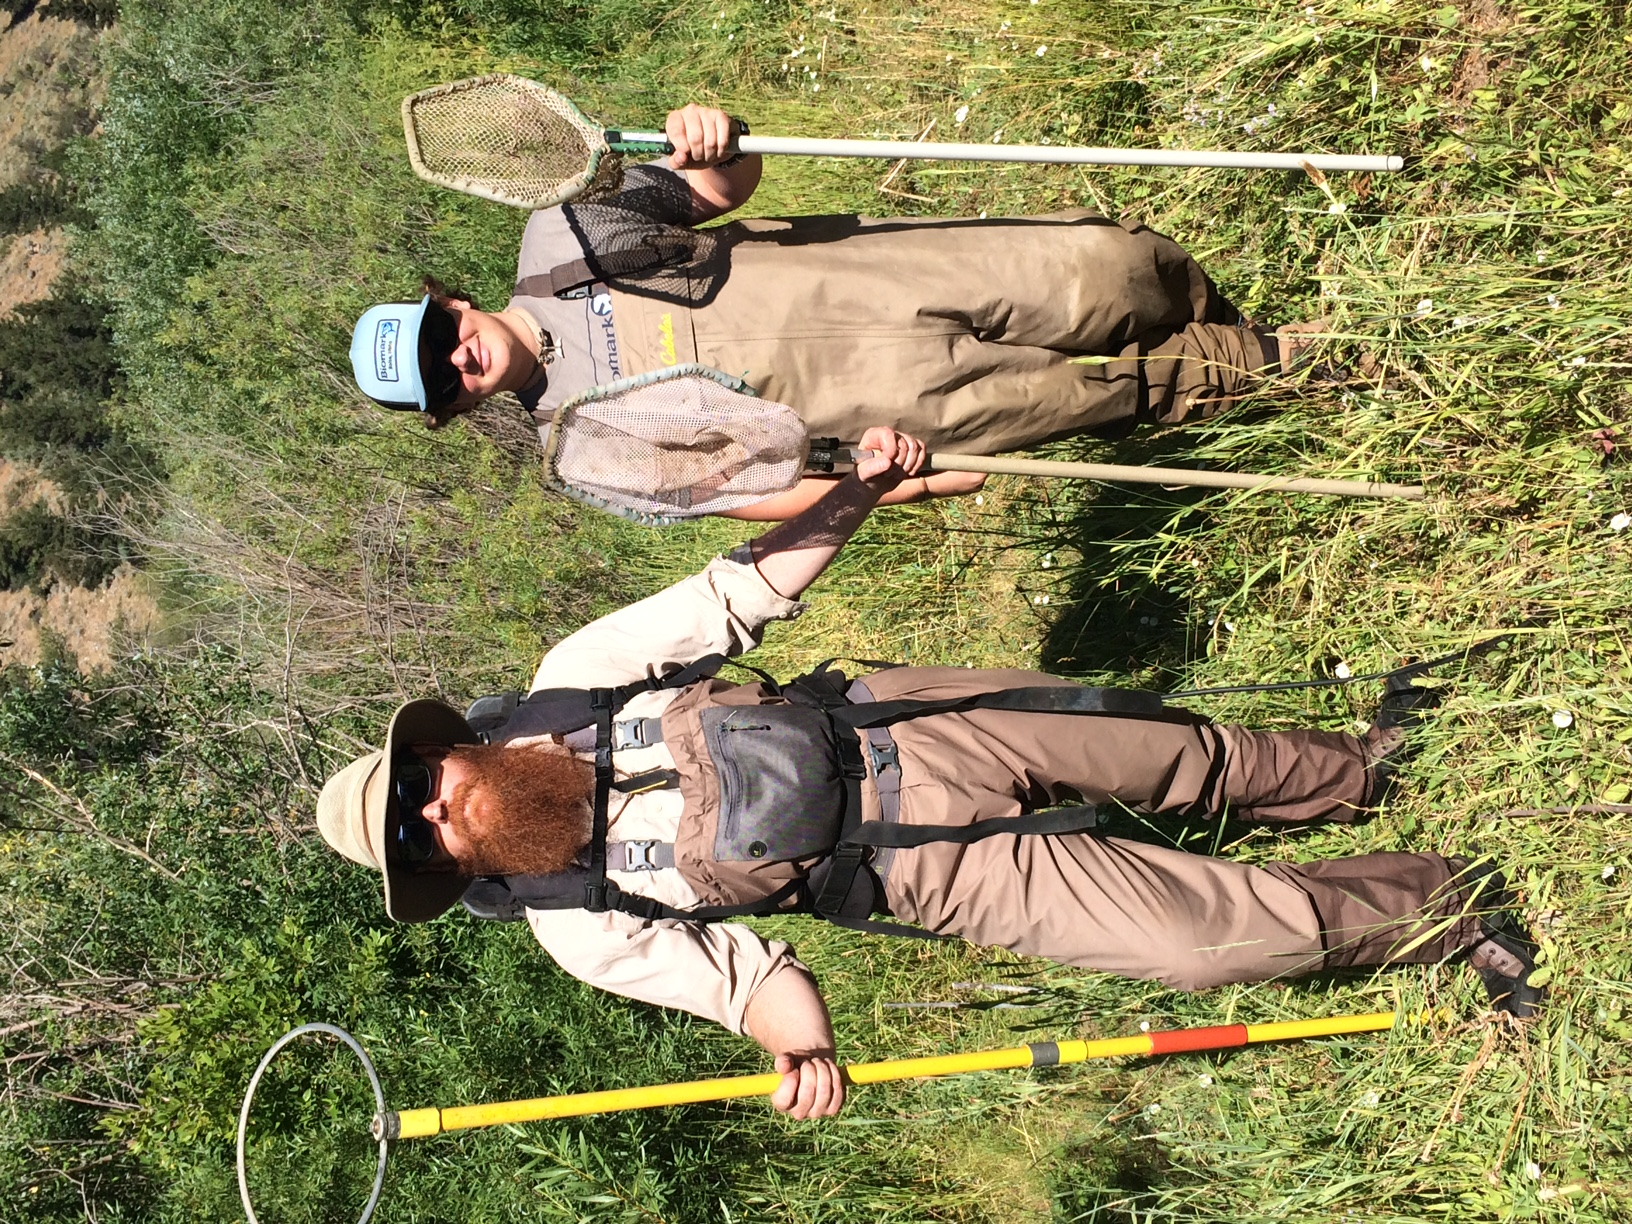 Dr. Timothy Walsworth, Assistant Professor of Quantitative Aquatic Ecology at Utah State University and volunteer Isaak MacKinnon sampling the population of native Bonneville cutthroat trout thriving in Righthand Fork of the Logan River, UT after the removal of non-native brown trout.